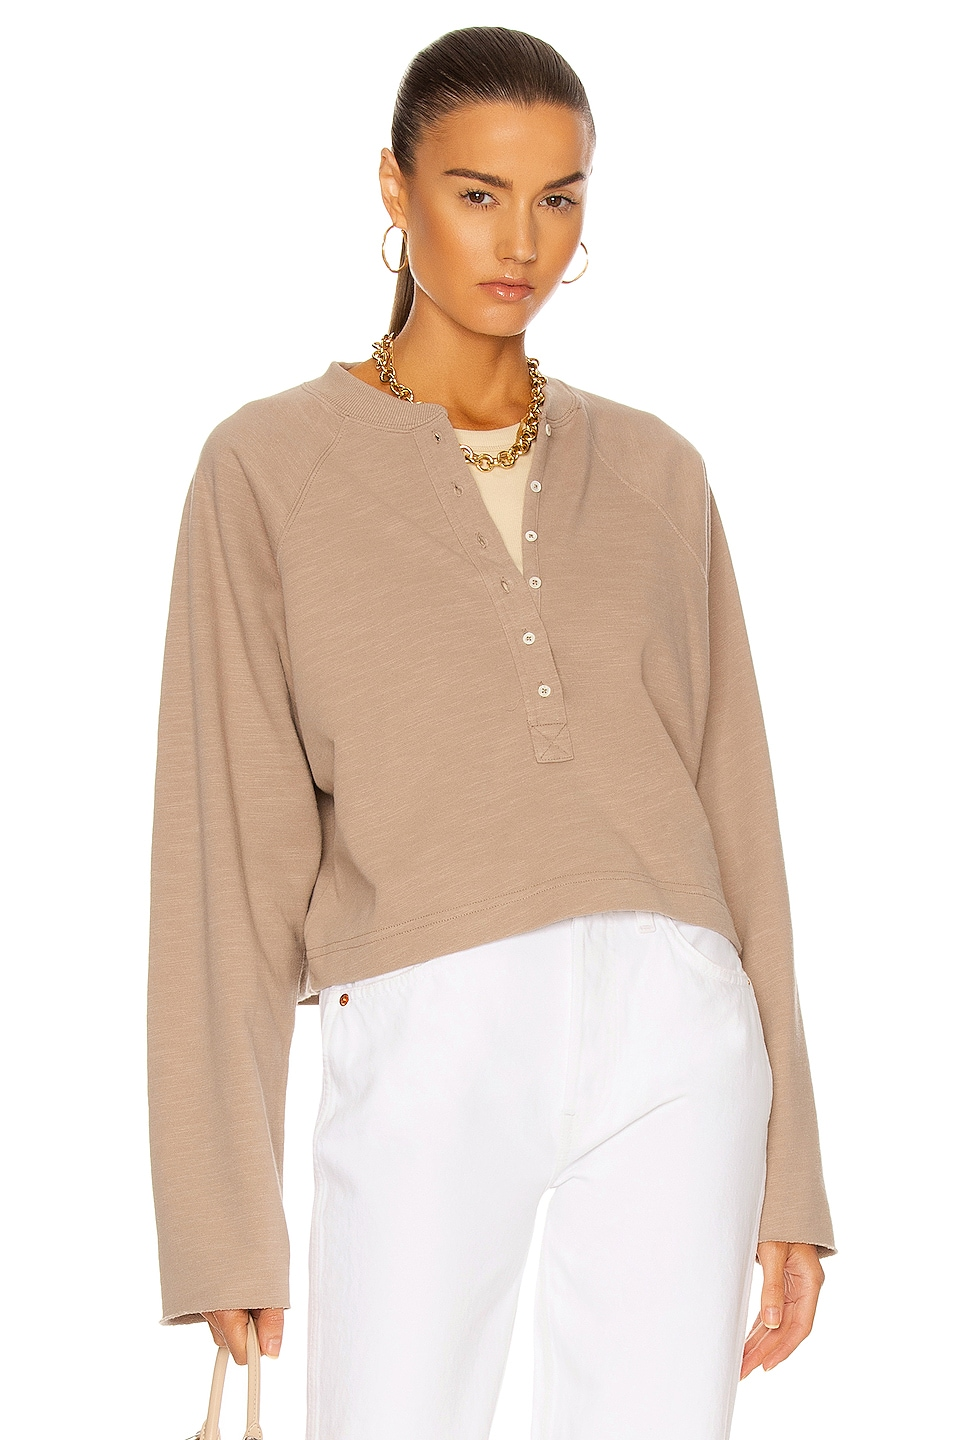 Image 1 of Marissa Webb So Uptight Lightweight Plunge Henley Top in Stone Taupe